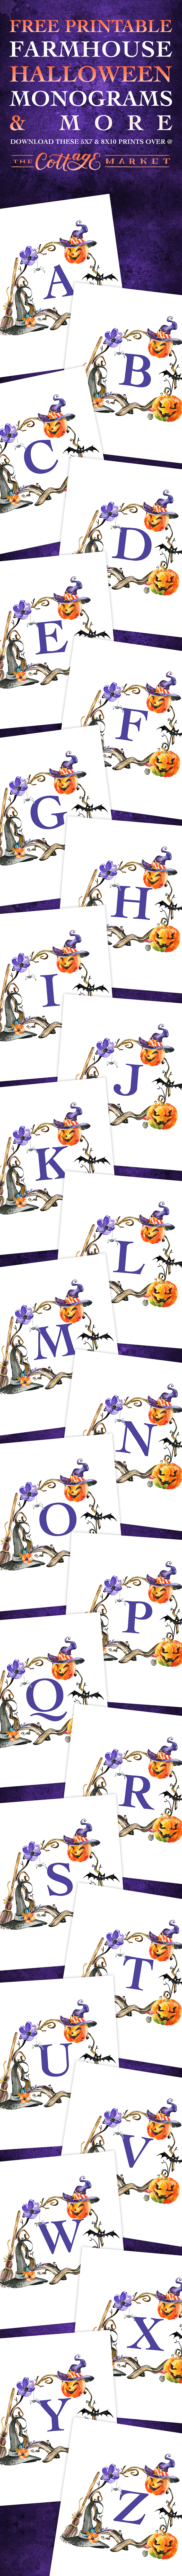 http://thecottagemarket.com/wp-content/uploads/2017/08/TCM-Halloween-Monogram-Tower-1.jpg